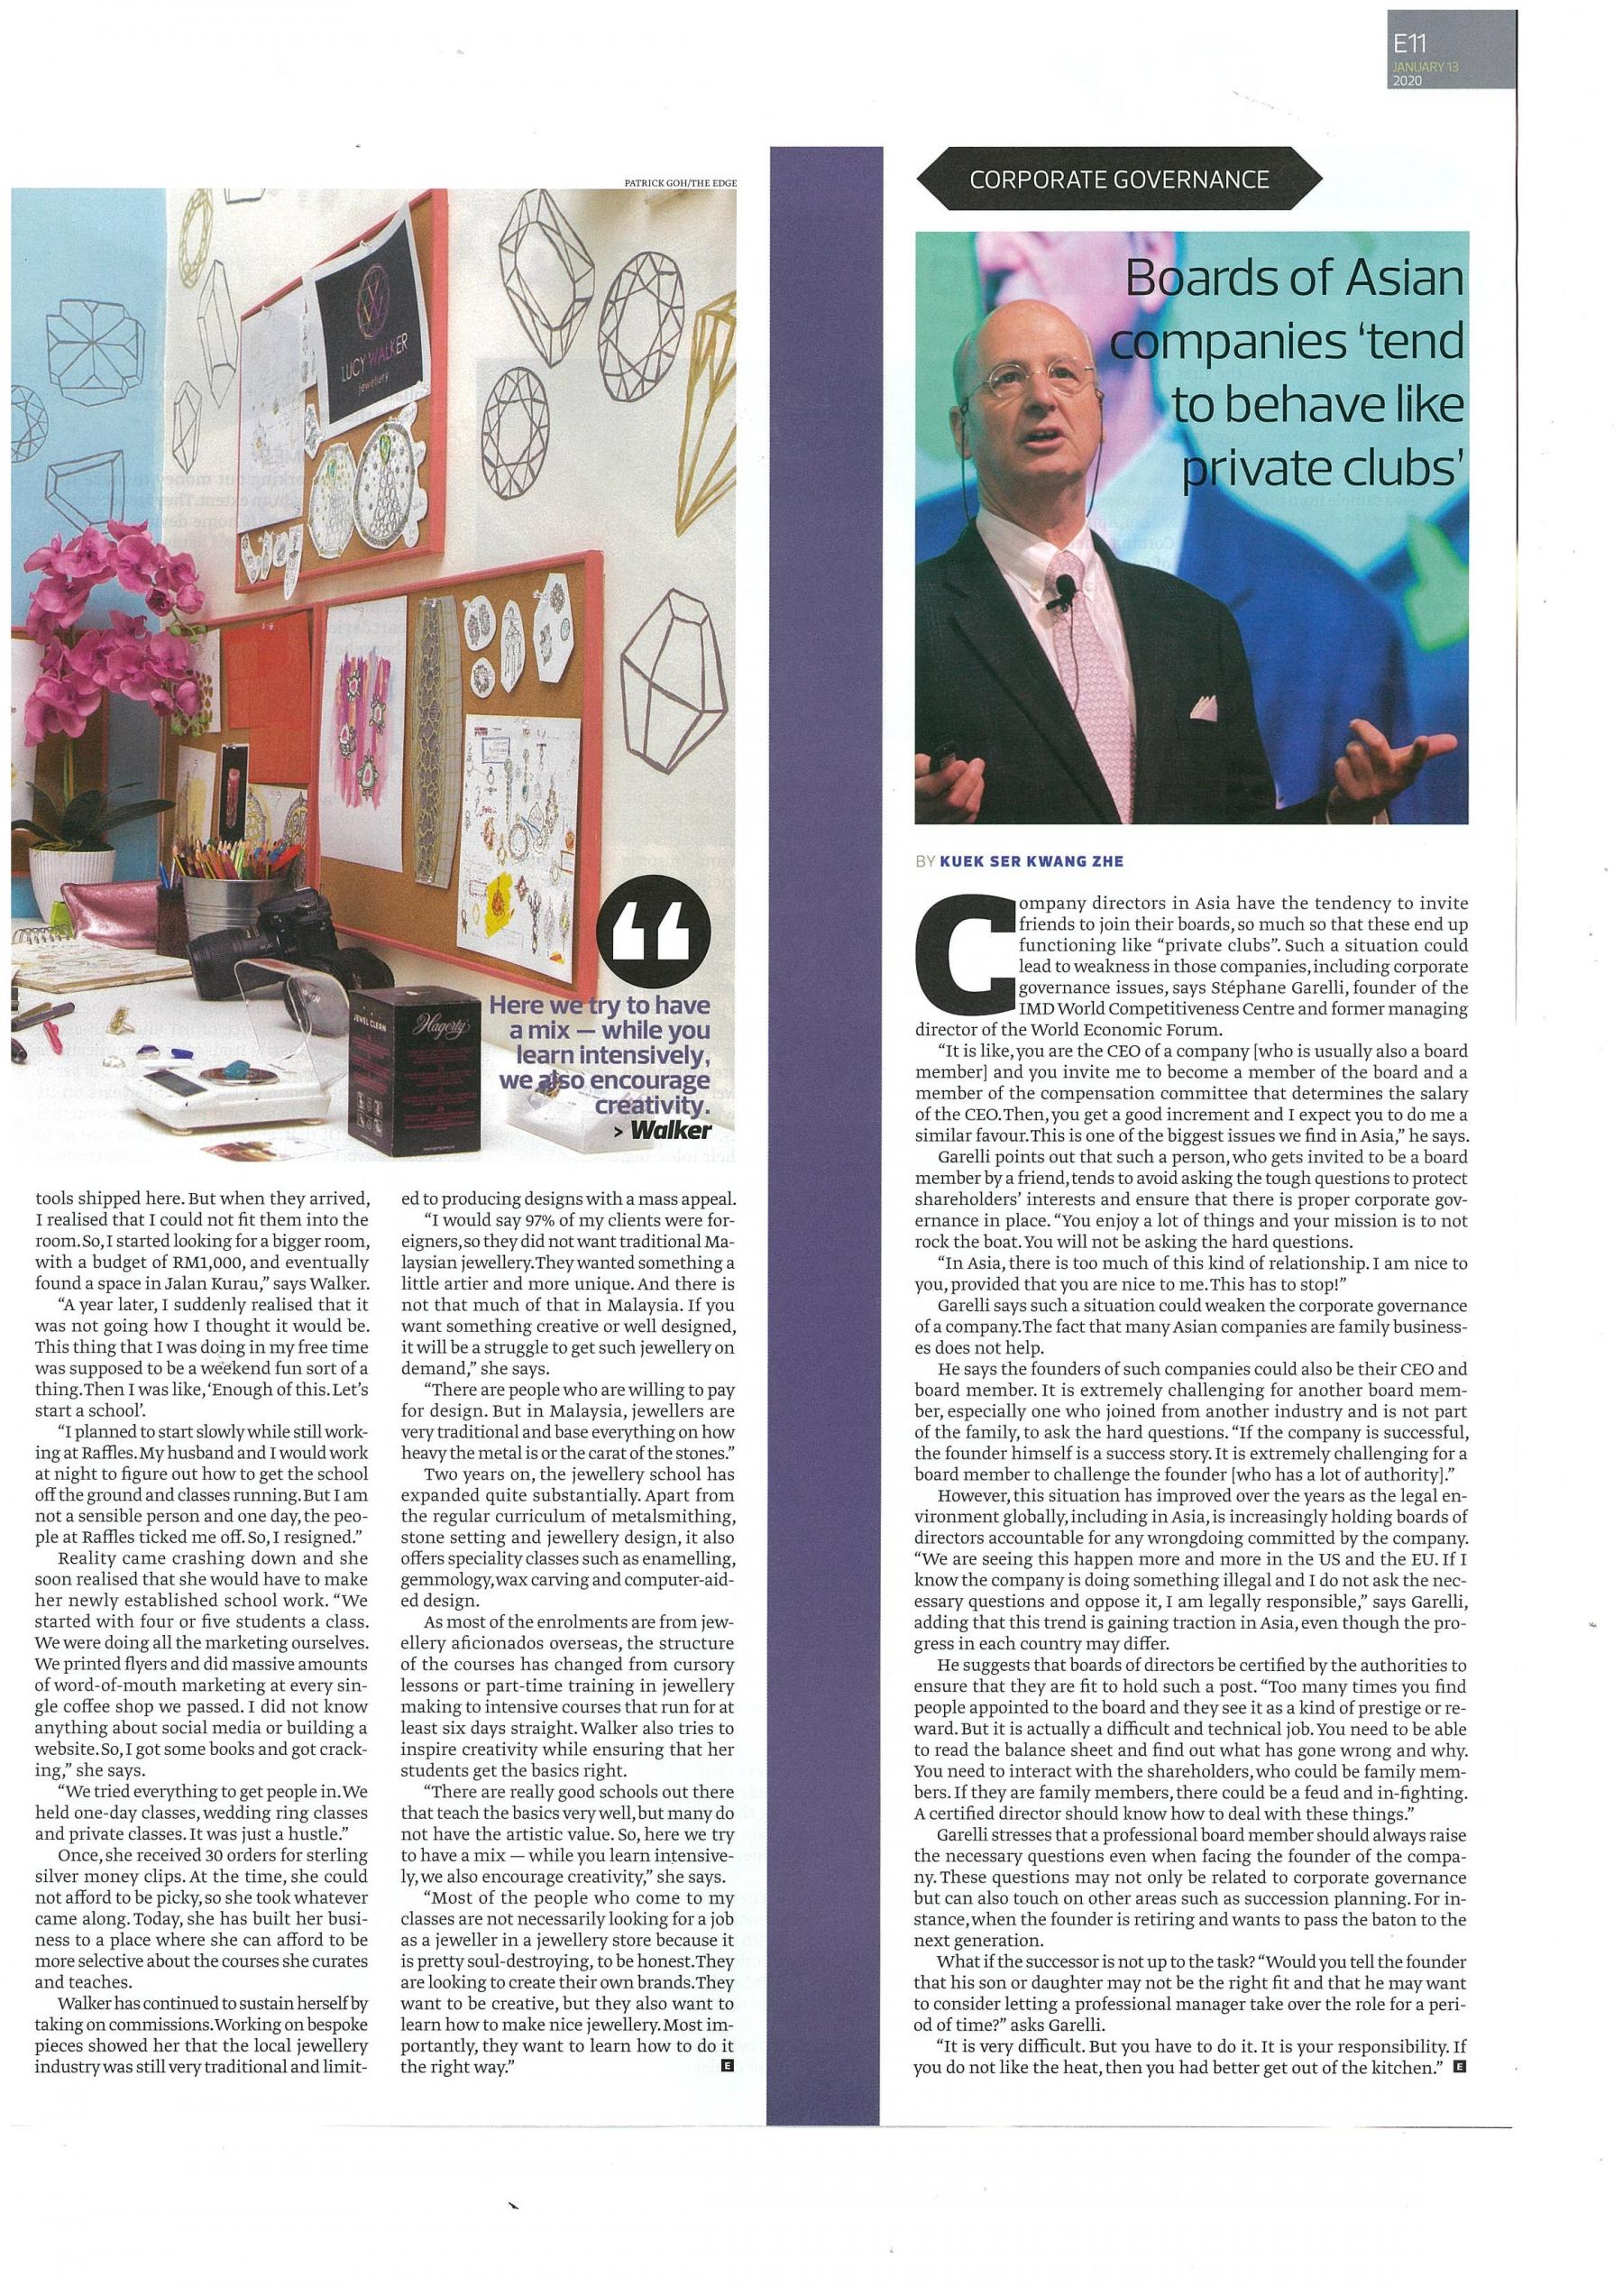 IDS2019 The Edge interview with Stephane Garelli The Edge Weekly 13 Jan 20201